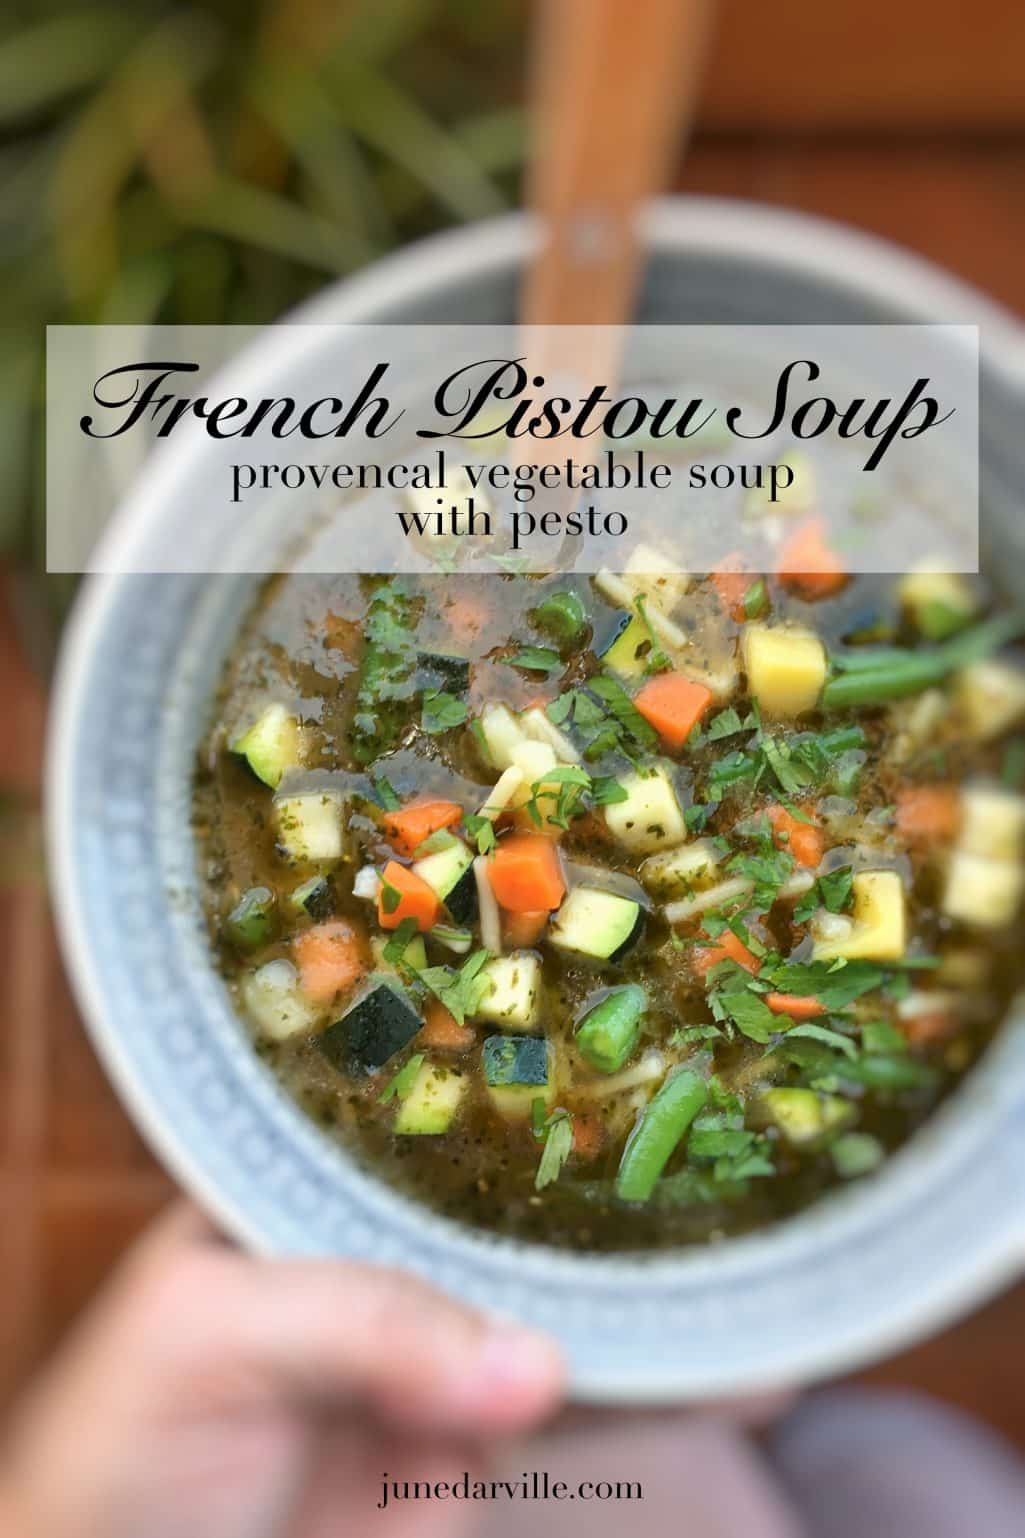 French pistou soup: a provençal chunky vegetable soup with peas, green beans, potatoes, zucchini and a spoonful of basil pesto...